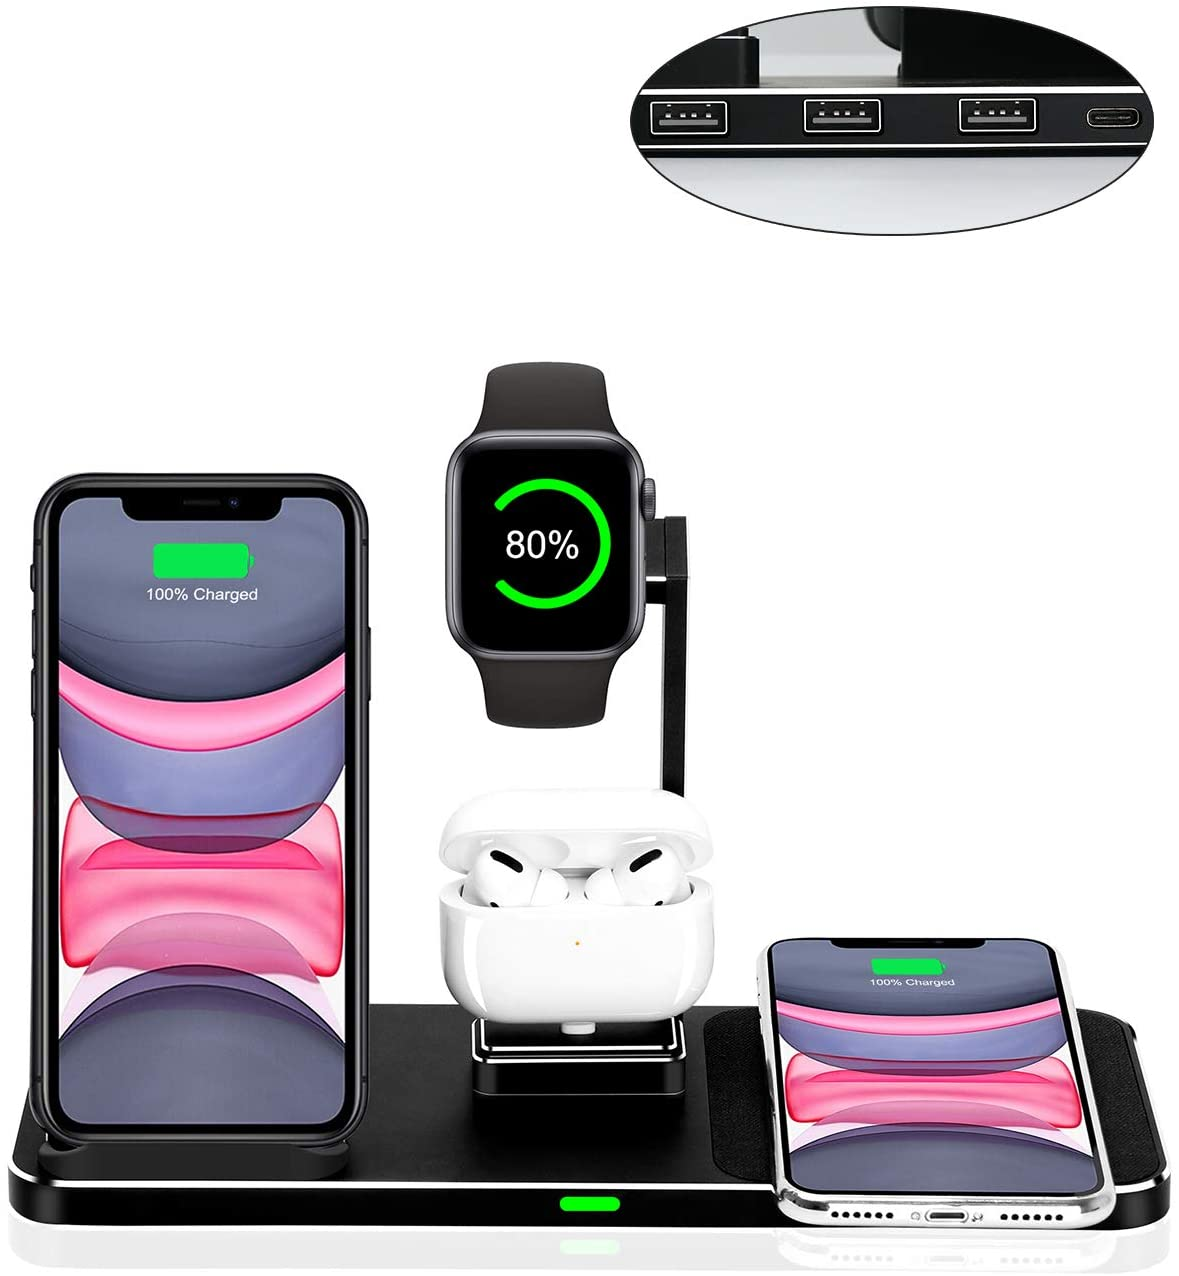 Zapuno Wireless Charger Stand,8 in 1 Aluminum Alloy 20W Wireless Fast Charging Station with 45W PD Charger for Apple Watch/Airpods/iPhone 11 Pro Max/X/XS/XR/XS Max/8 iPad Samsung Google Huawei